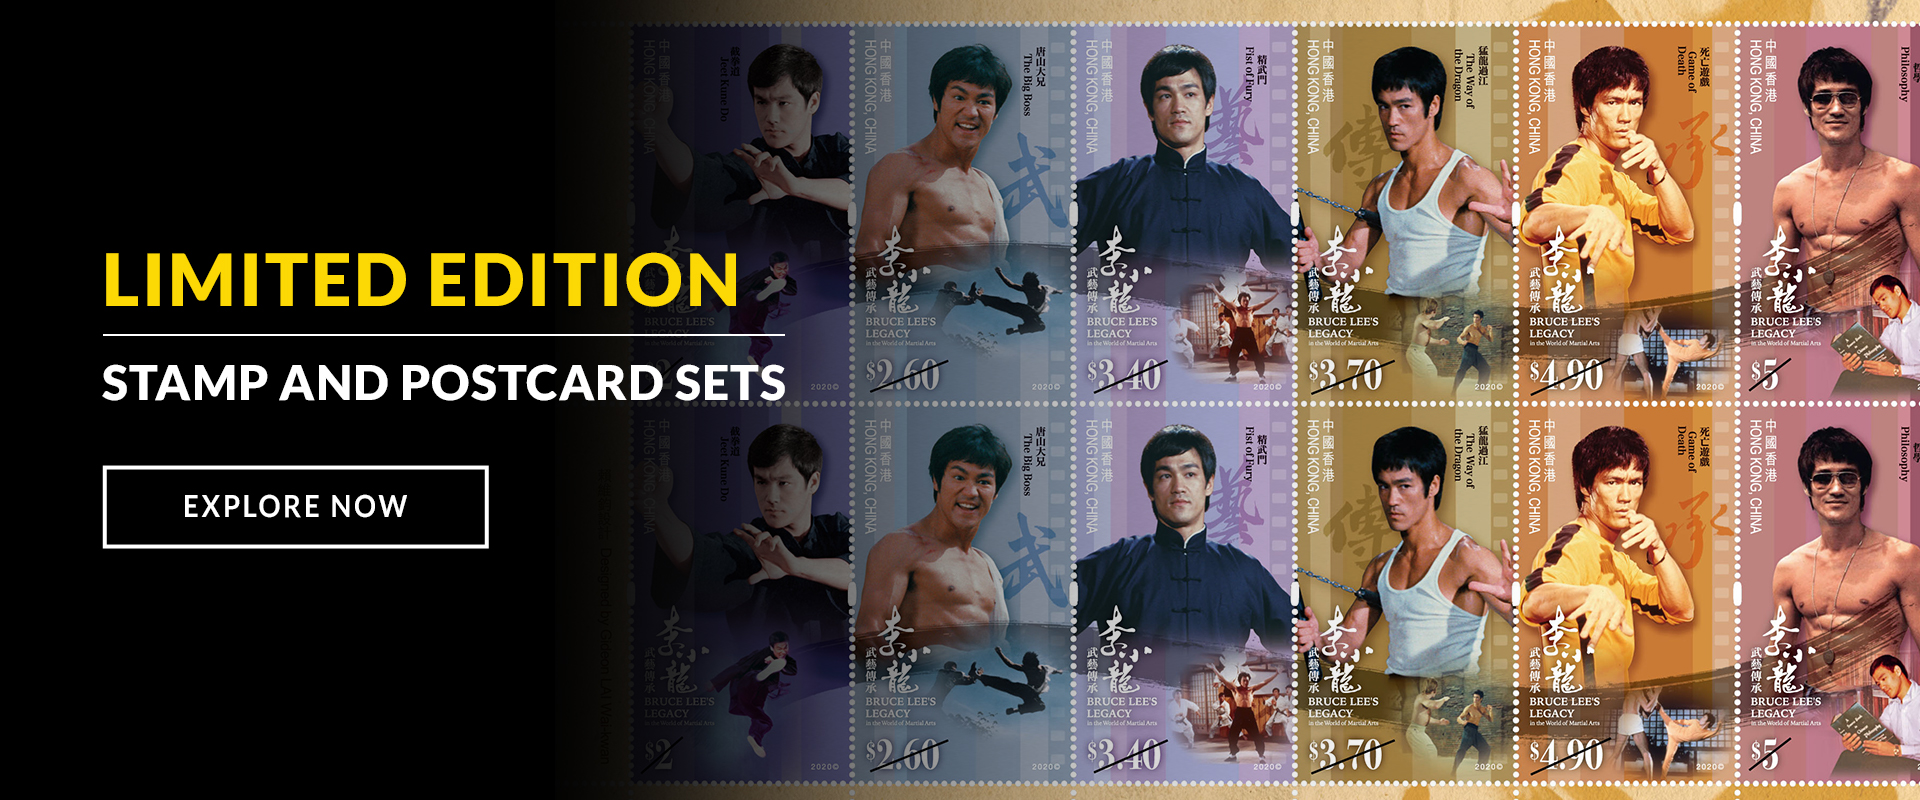 Bruce Lee Limited Edition Stamps and Postcards